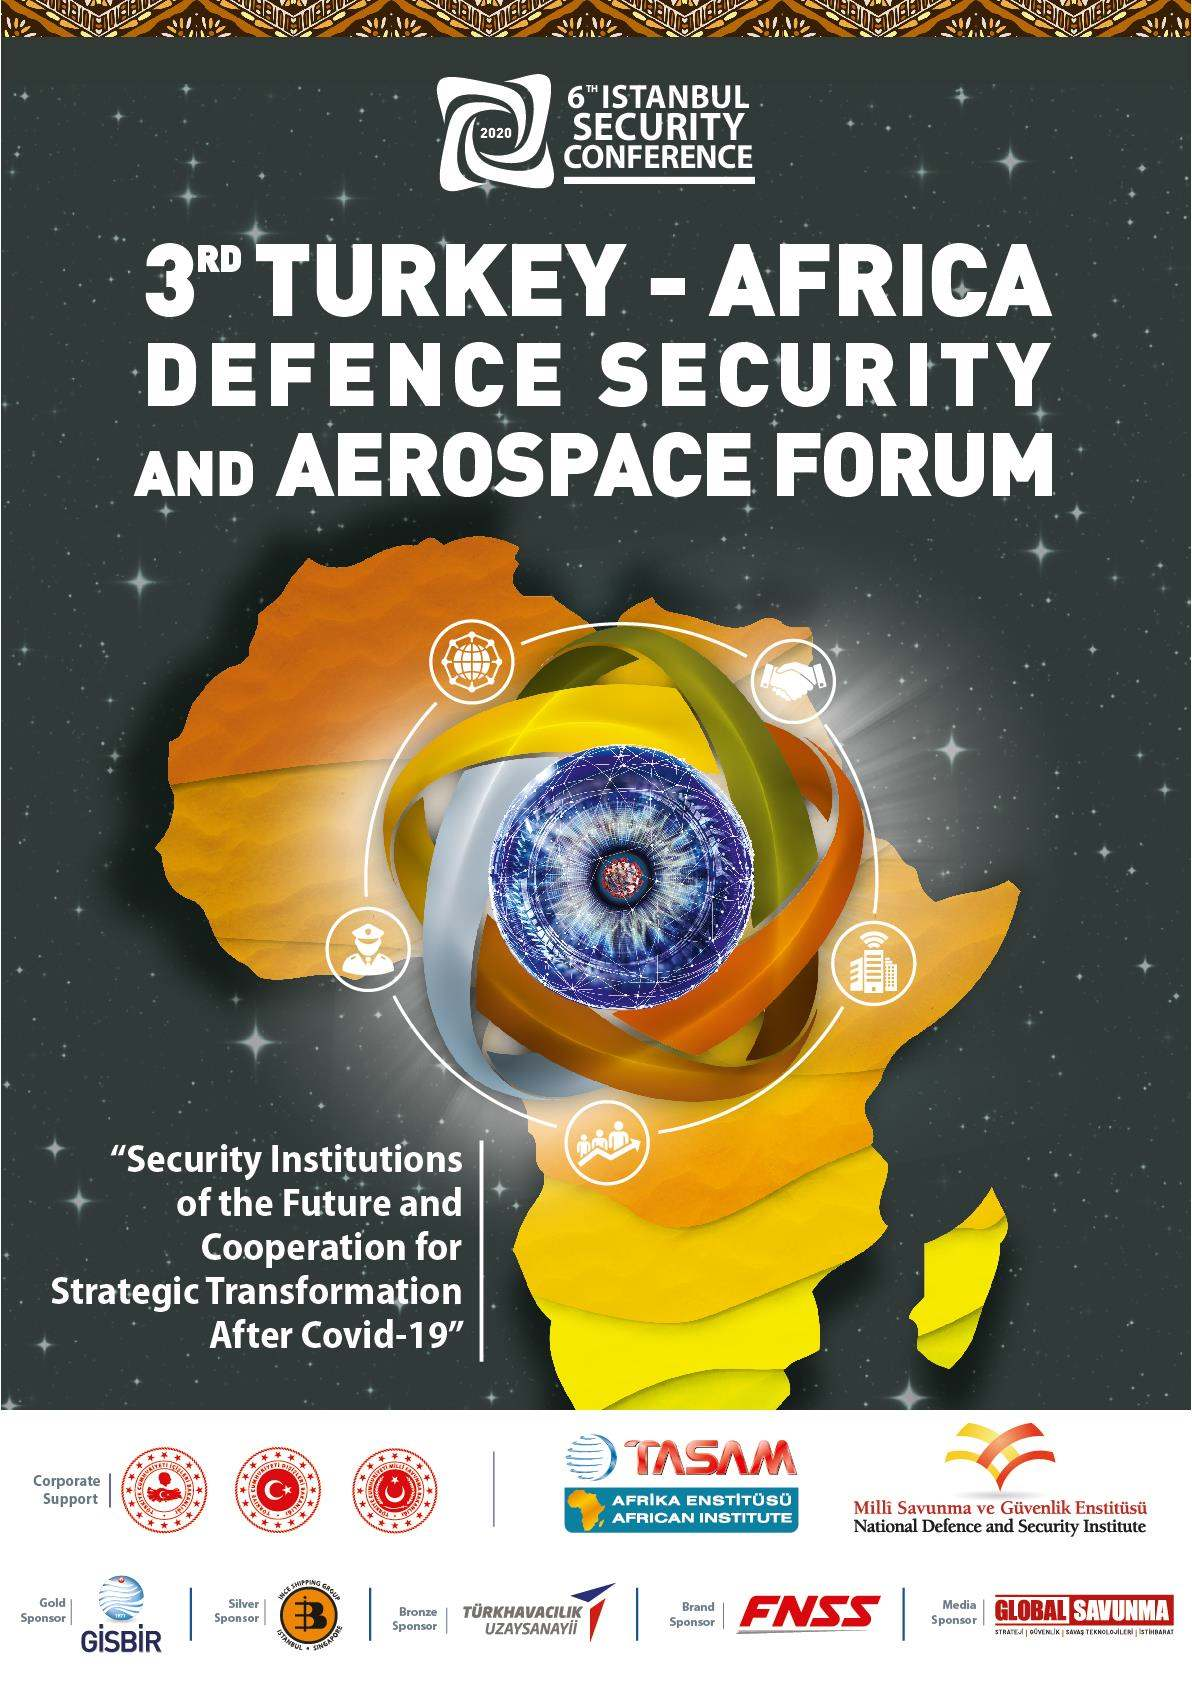 3rd Turkey - Africa Defence Security and Aerospace Forum